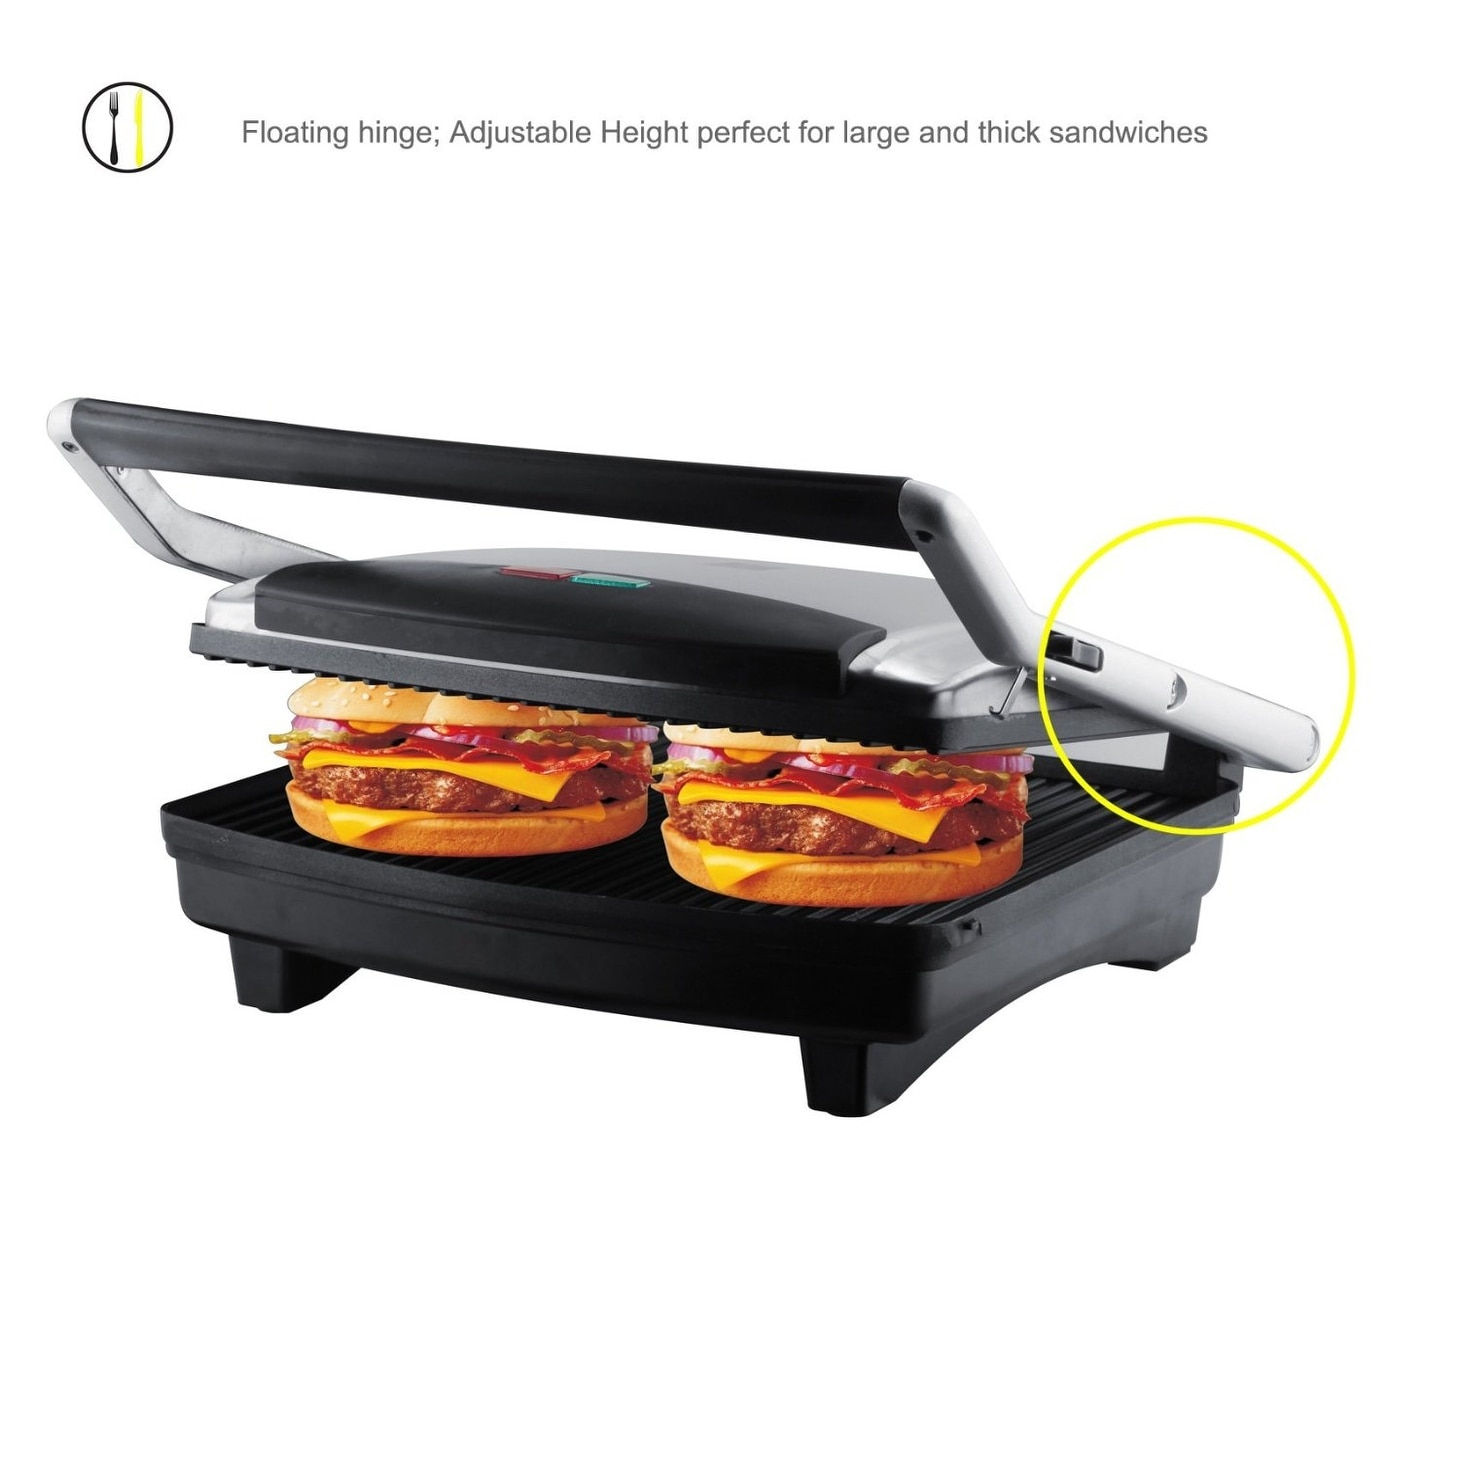 Grille Panini Zz S677 Gourmet Grill Panini And Sandwich Press With Large Cooking Surface 1500w Silver